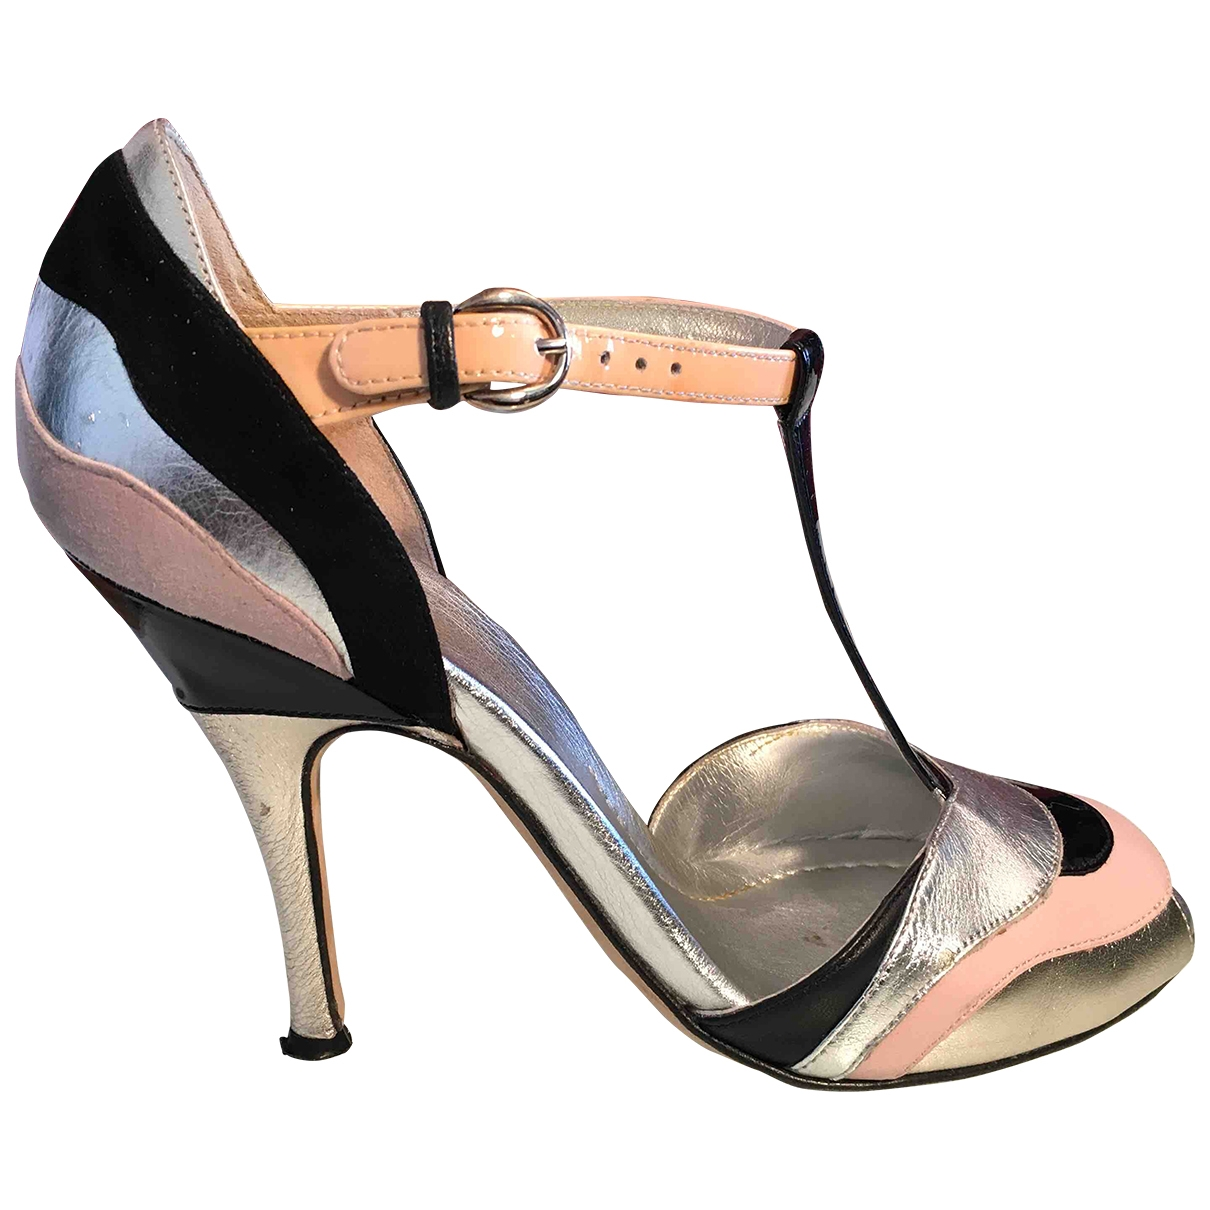 D&g \N Silver Leather Sandals for Women 38 EU